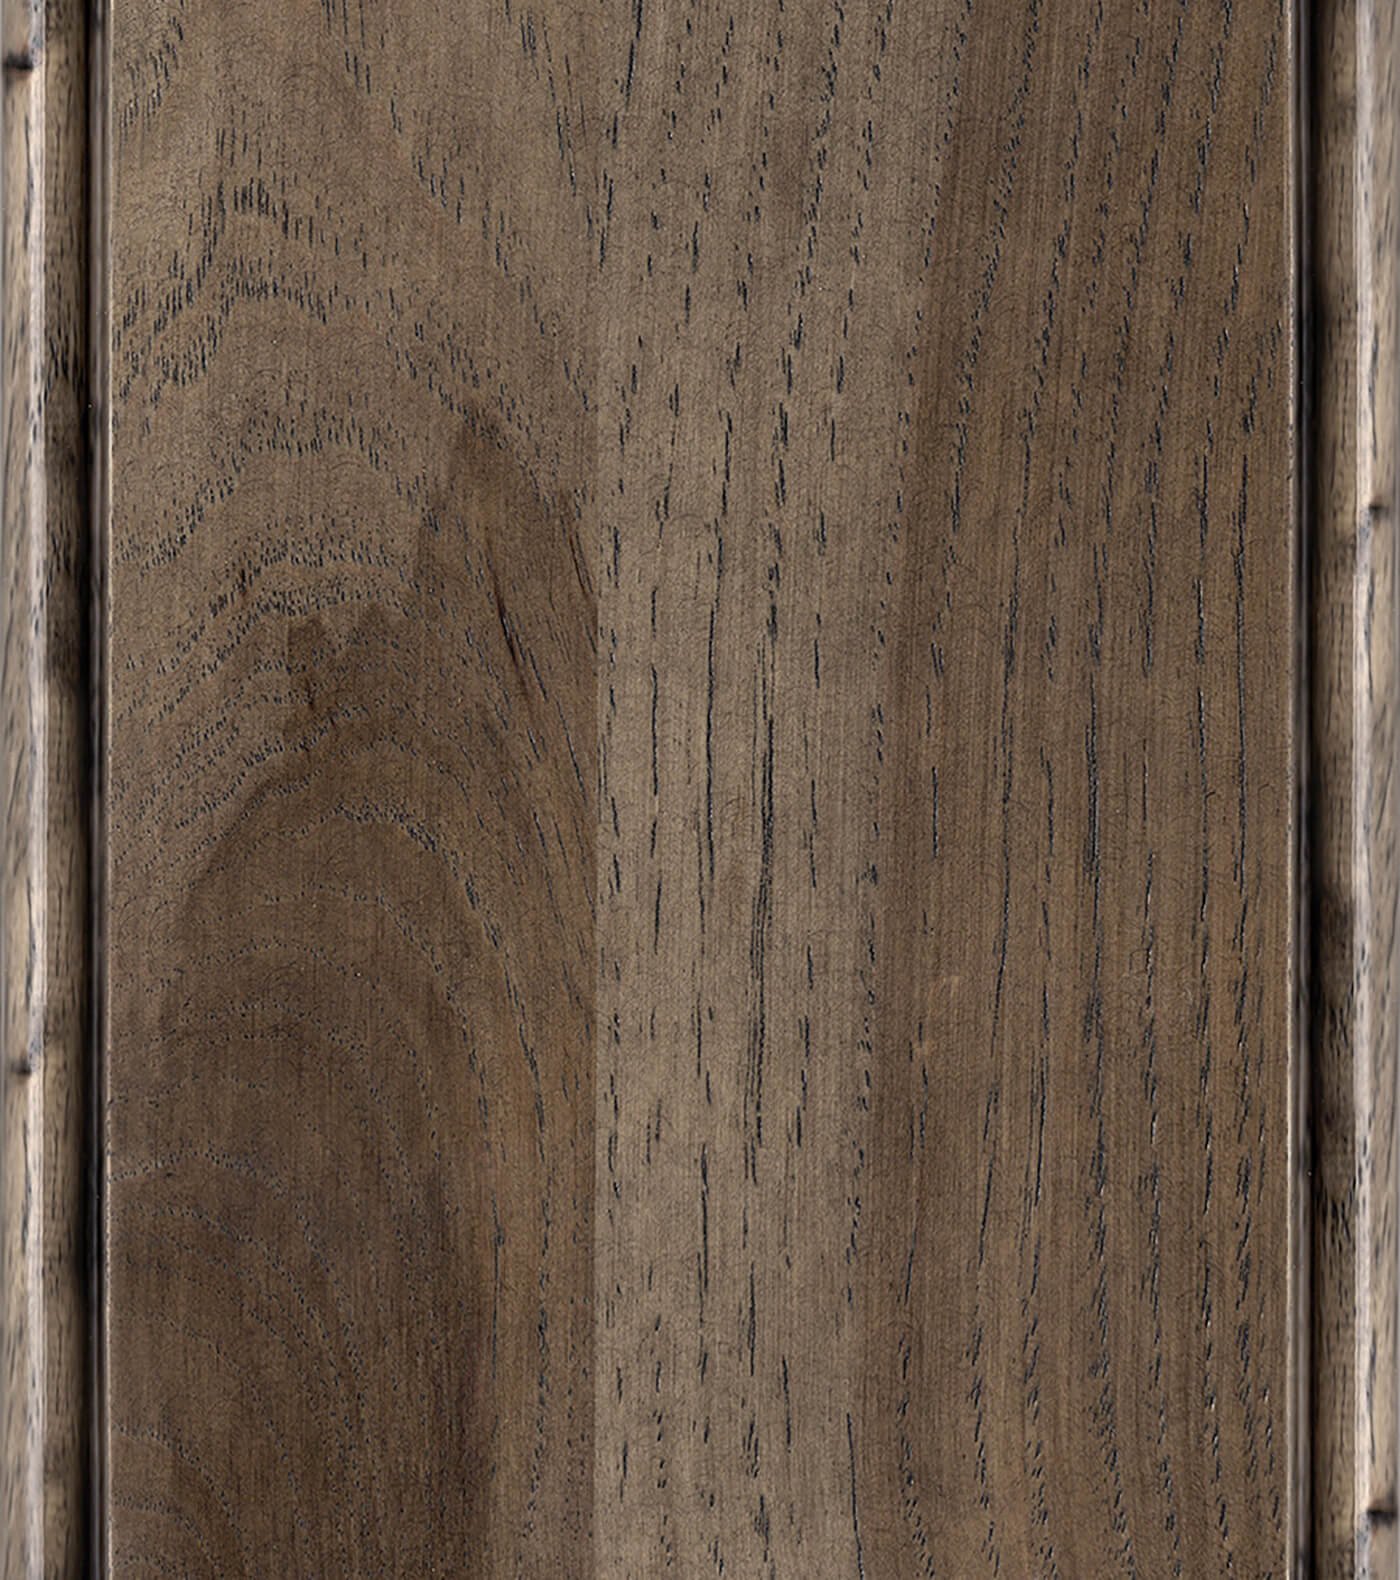 Caraway Stain on Hickory or Rustic Hickory